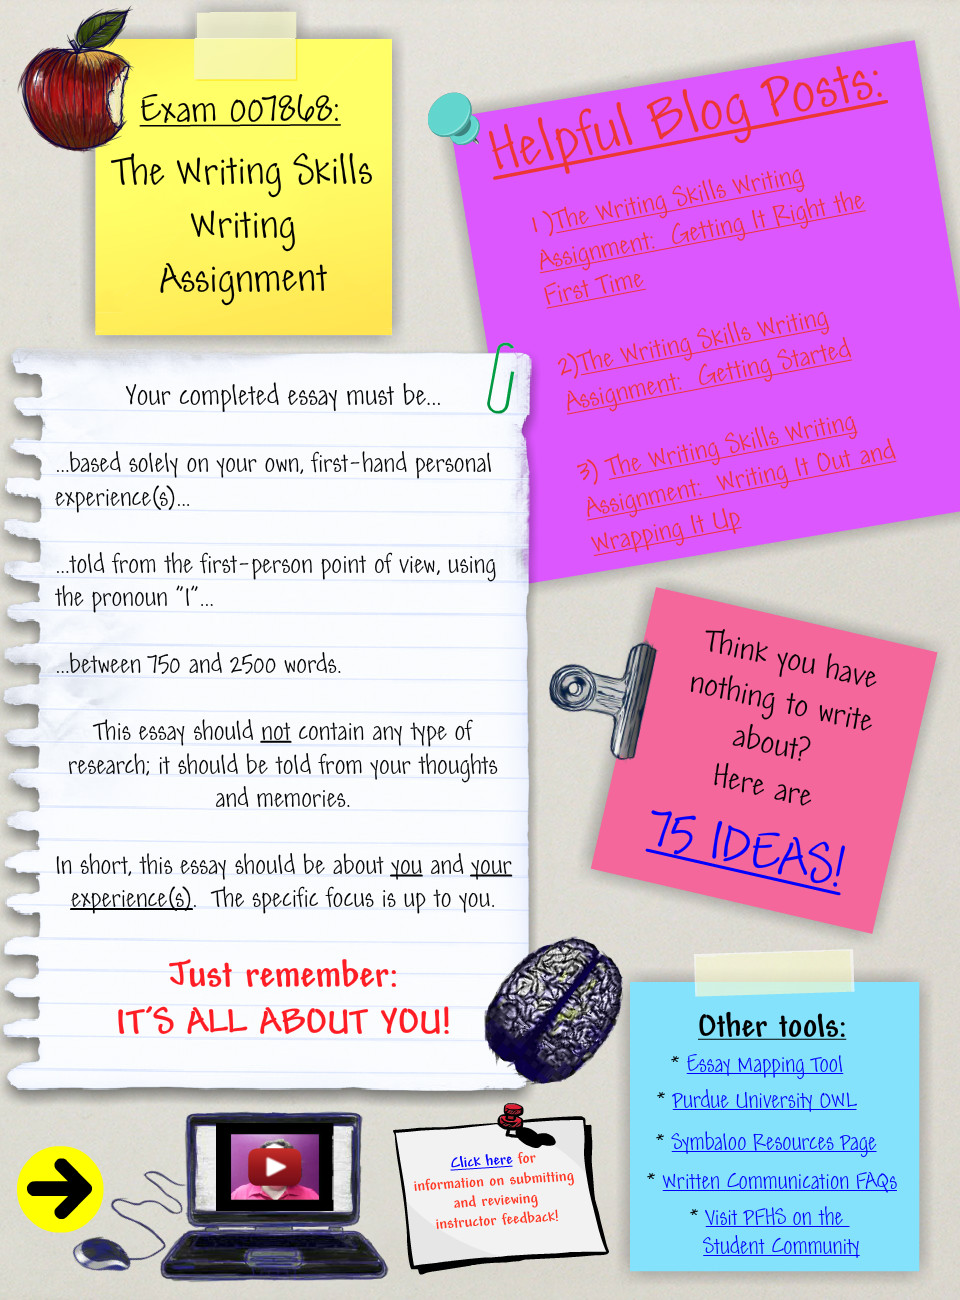 personal writing assignment Personal narrative writing idea: your life's but also printable student assignment sheet click the image to the left writing assignments/prompts tags: creative writing, narrative writing, personal narrative, priting assignment, writing prompt grammar rock: adverbs writing prompt.